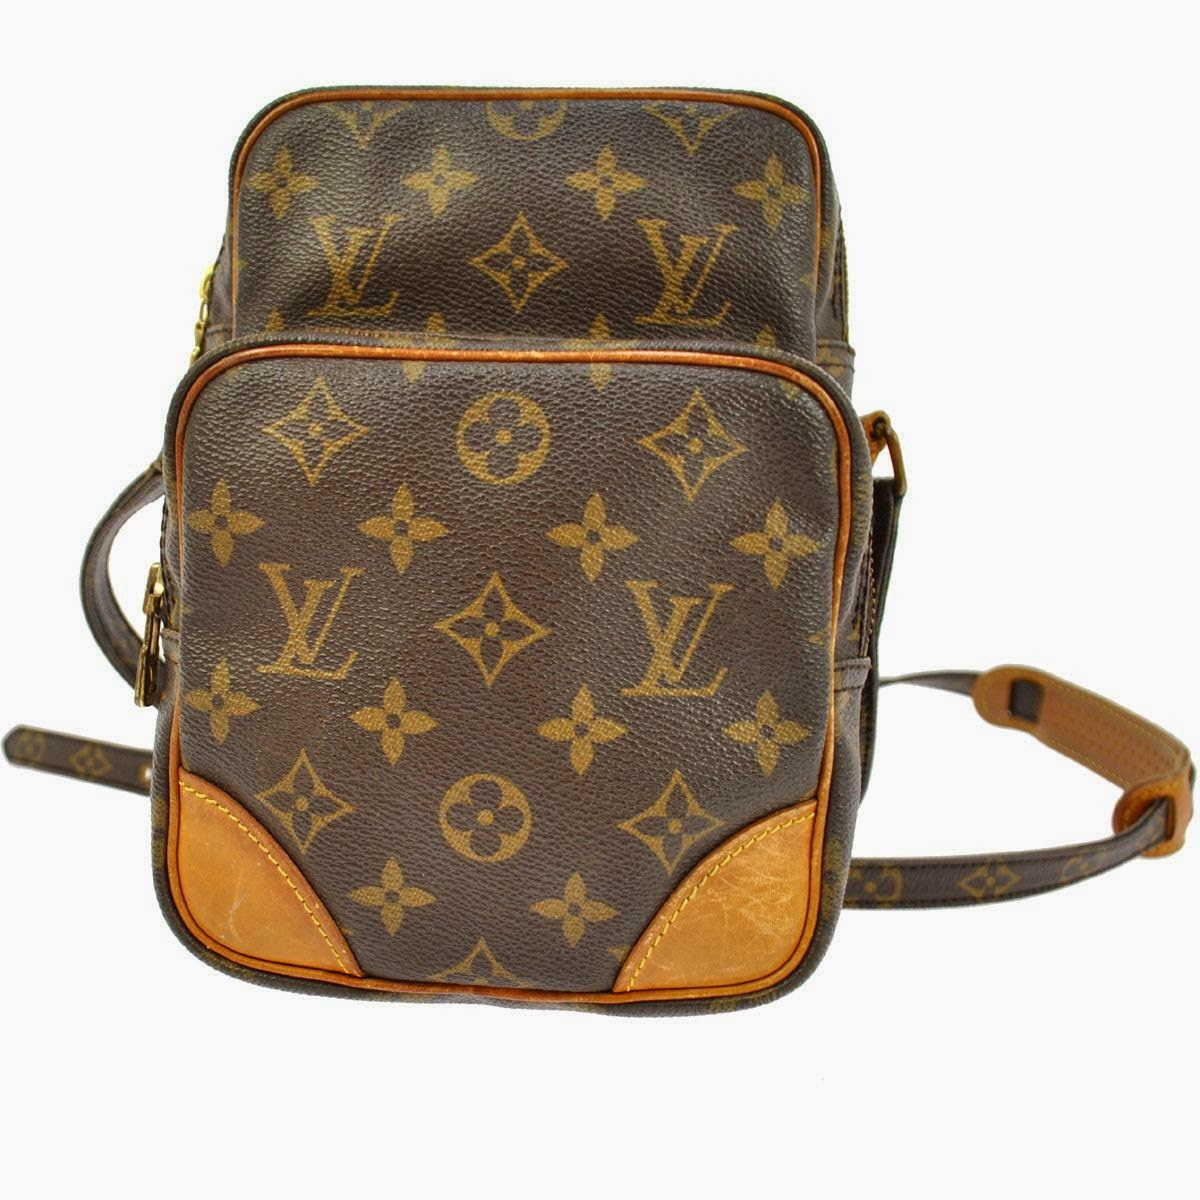 970d52604 ... Lv Sling Bag For Men  23 Beautiful Lv Sling Bag For Women